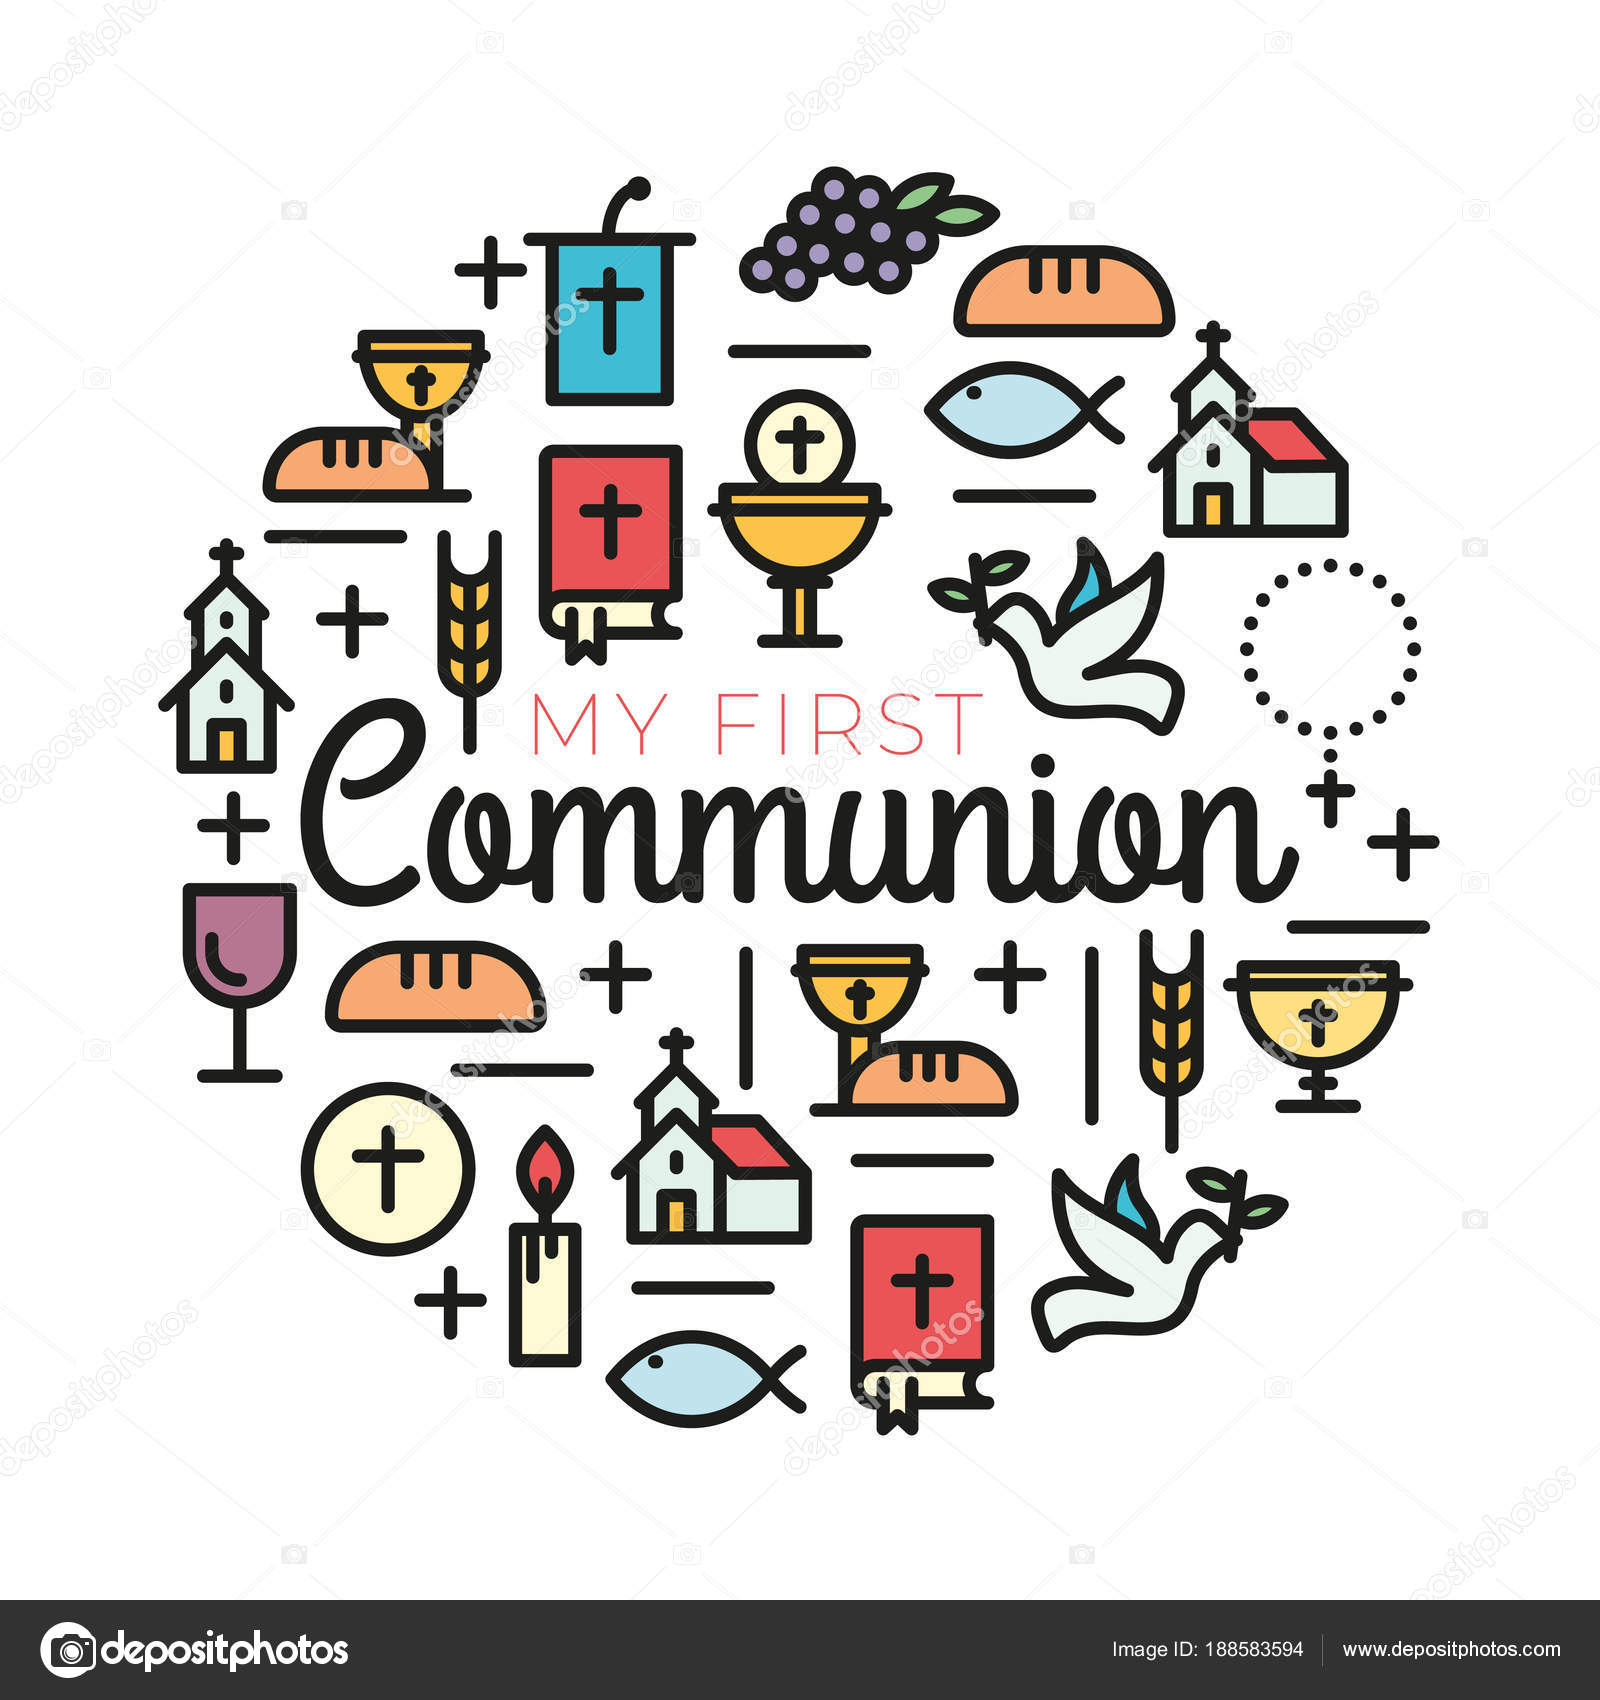 First communion symbols for a nice invitation design stock vector first communion symbols for a nice invitation design church and christian community flat outline icons vector by alvaroc buycottarizona Gallery